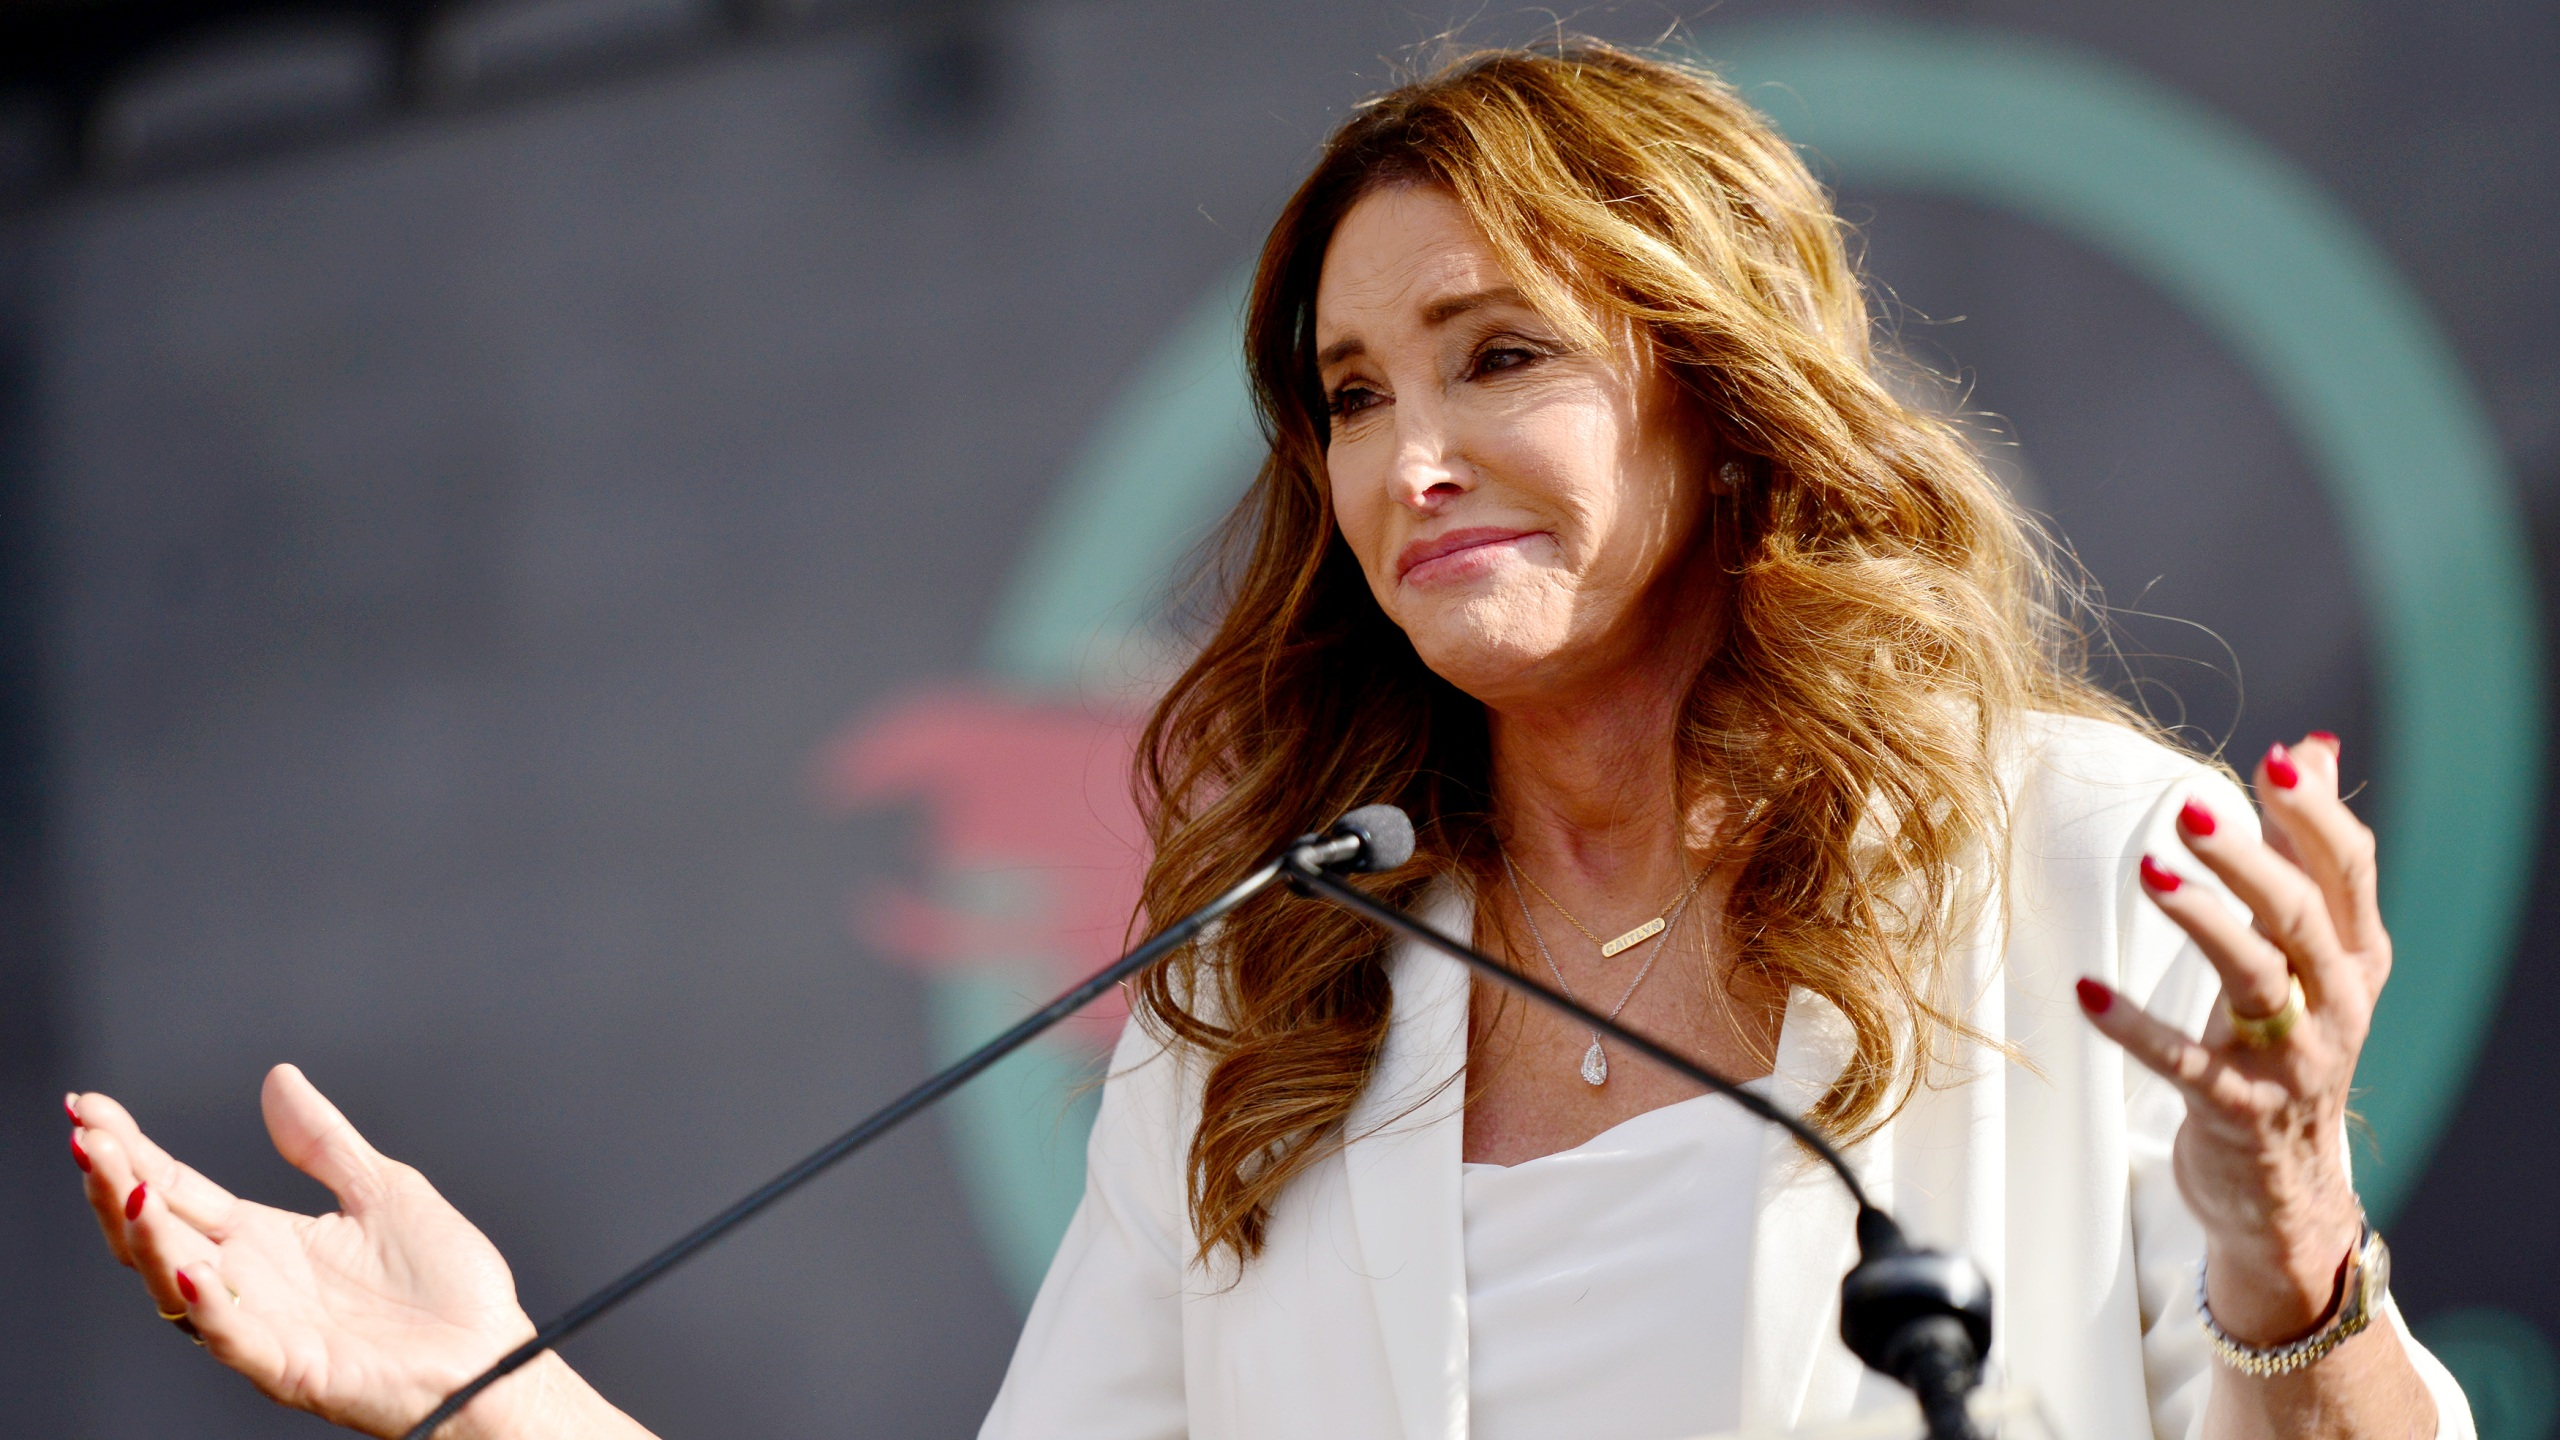 Caitlyn Jenner speaks at the 4th annual Women's March LA: Women Rising at Pershing Square on January 18, 2020 in Los Angeles, California. (Chelsea Guglielmino/Getty Images)